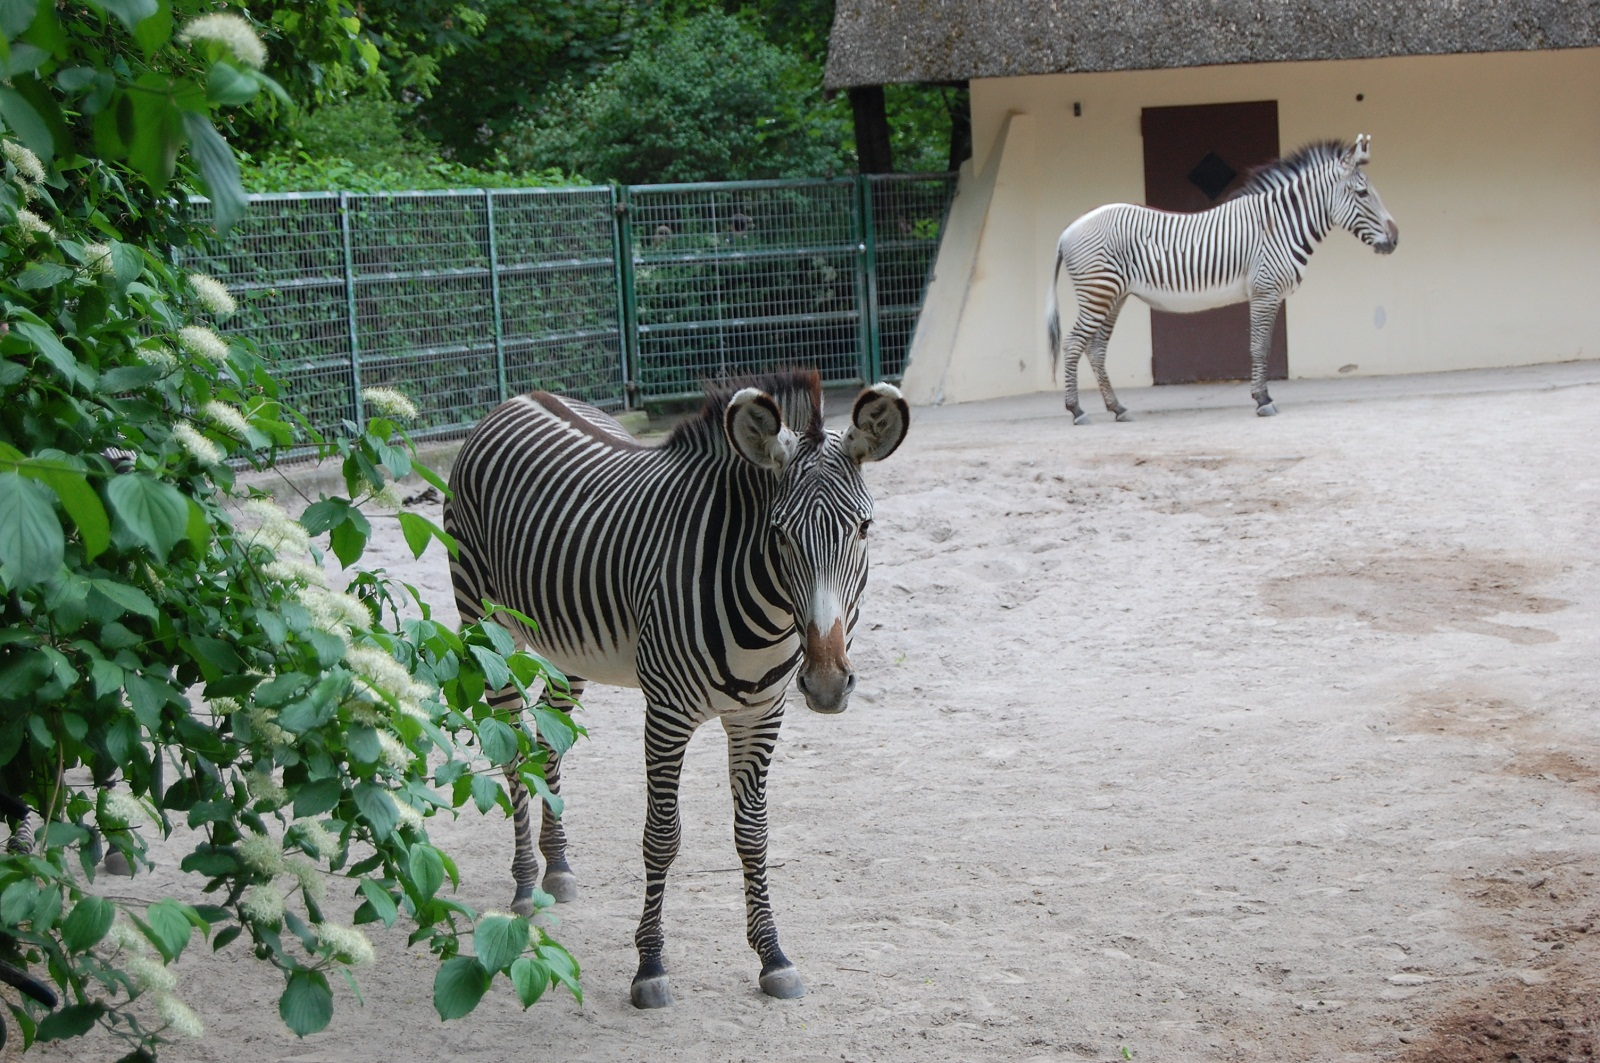 Frankfurt Zoo, Germany, Zebras